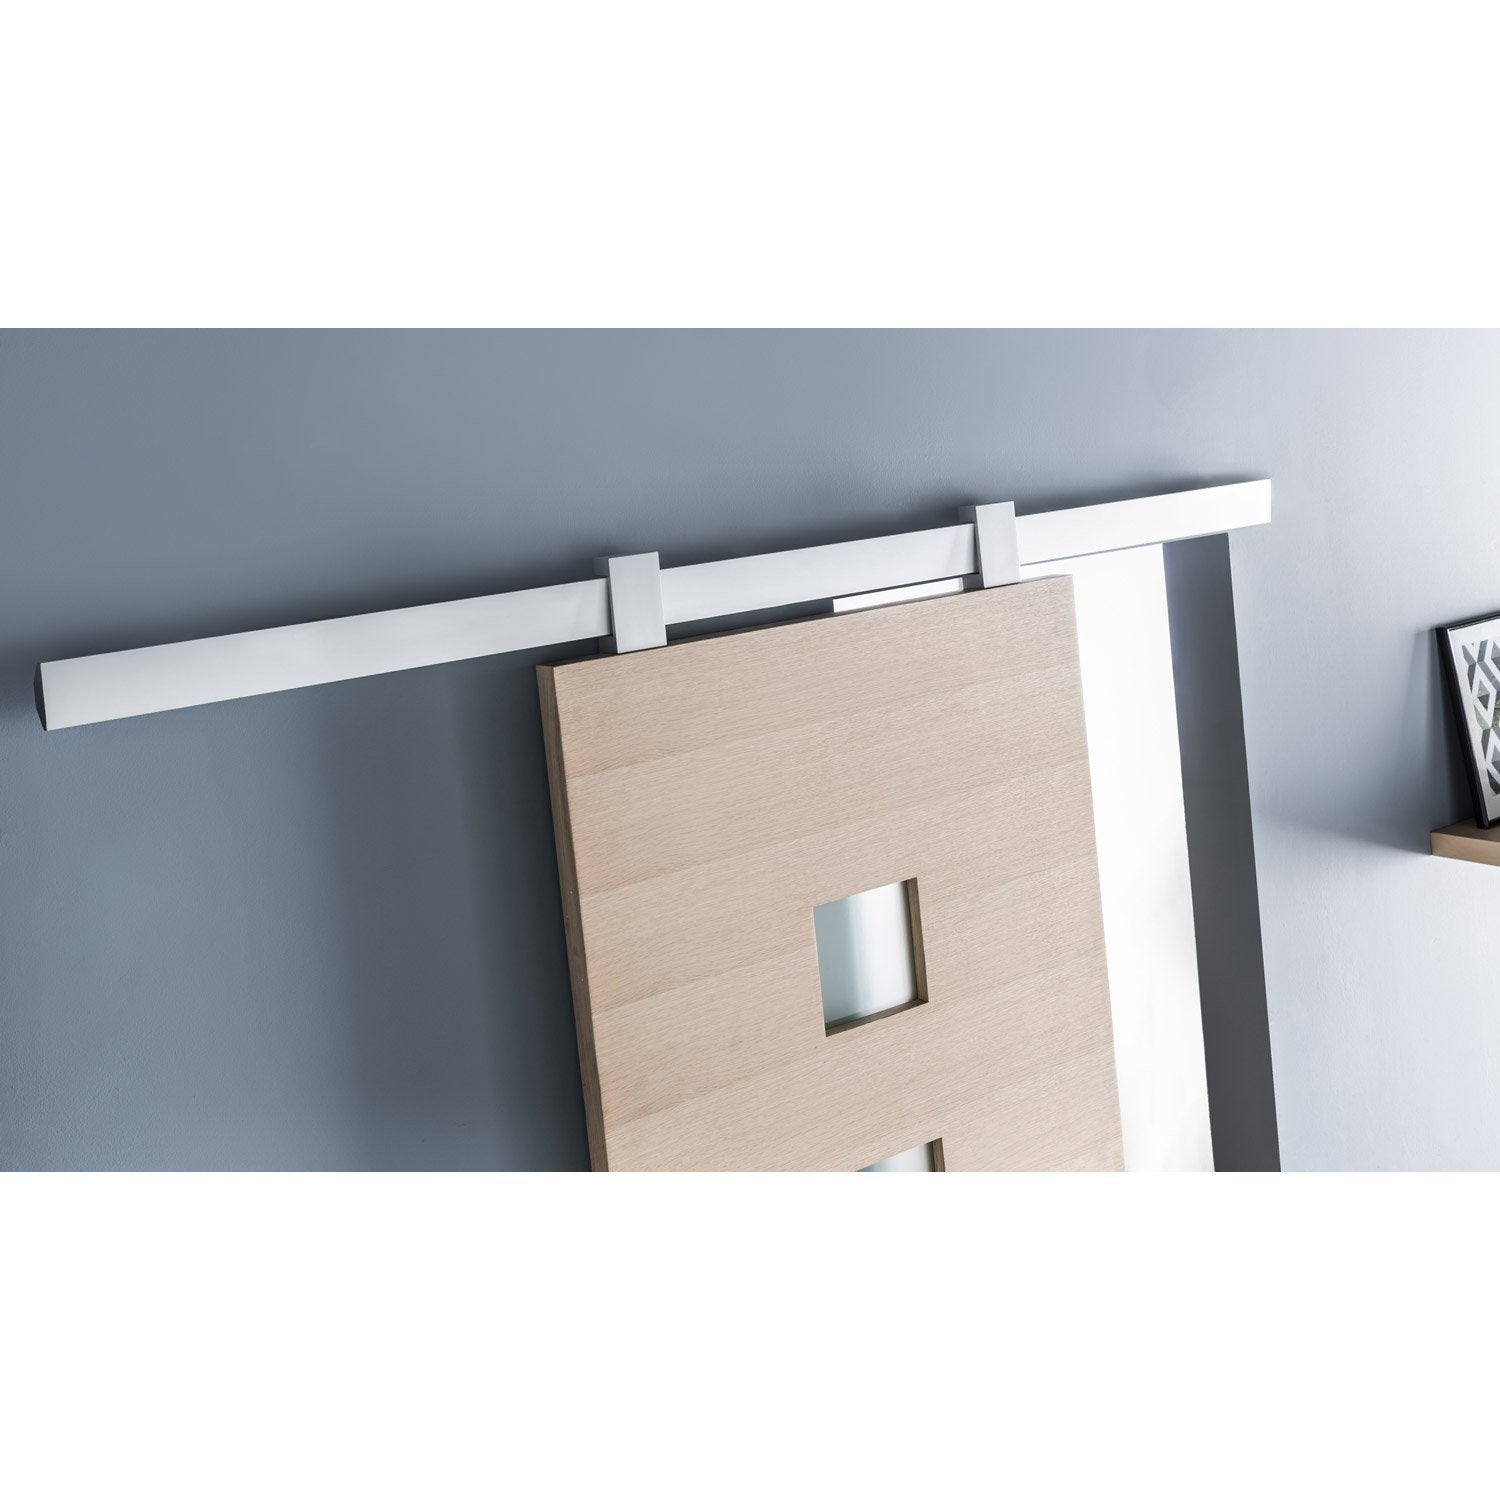 Rail coulissant gota pour porte de largeur 93 cm maximum leroy merlin - Porte suspendue leroy merlin ...